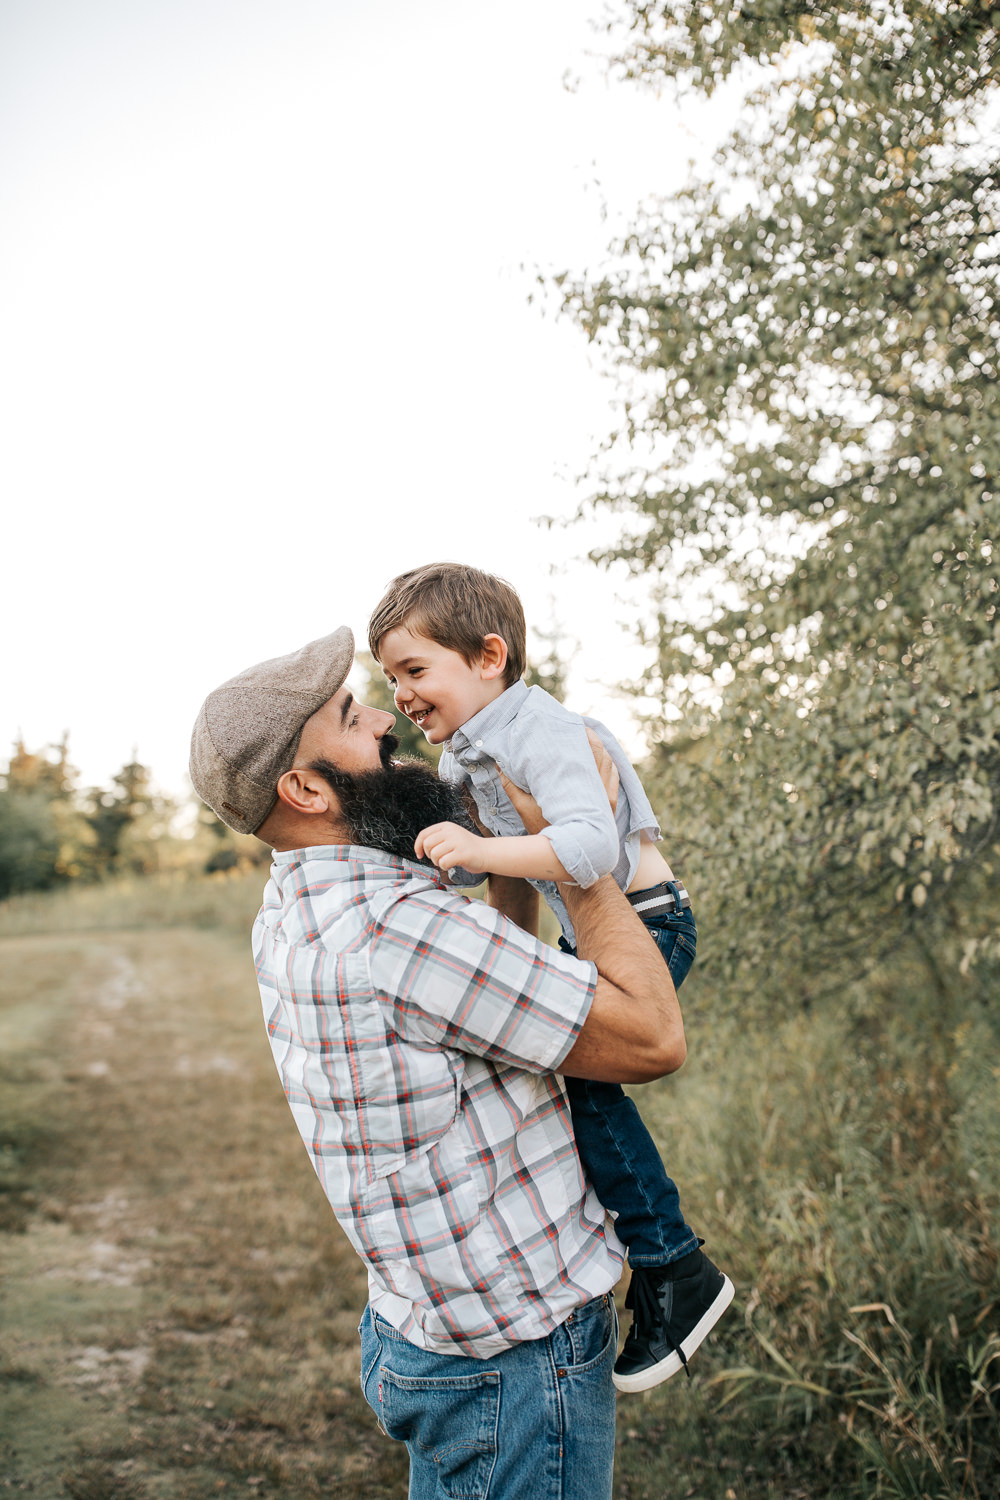 father standing in field holding 4 year old boy in his arms up in the air, face to face, son laughing and smiling at dad  - Newmarket Lifestyle Photography